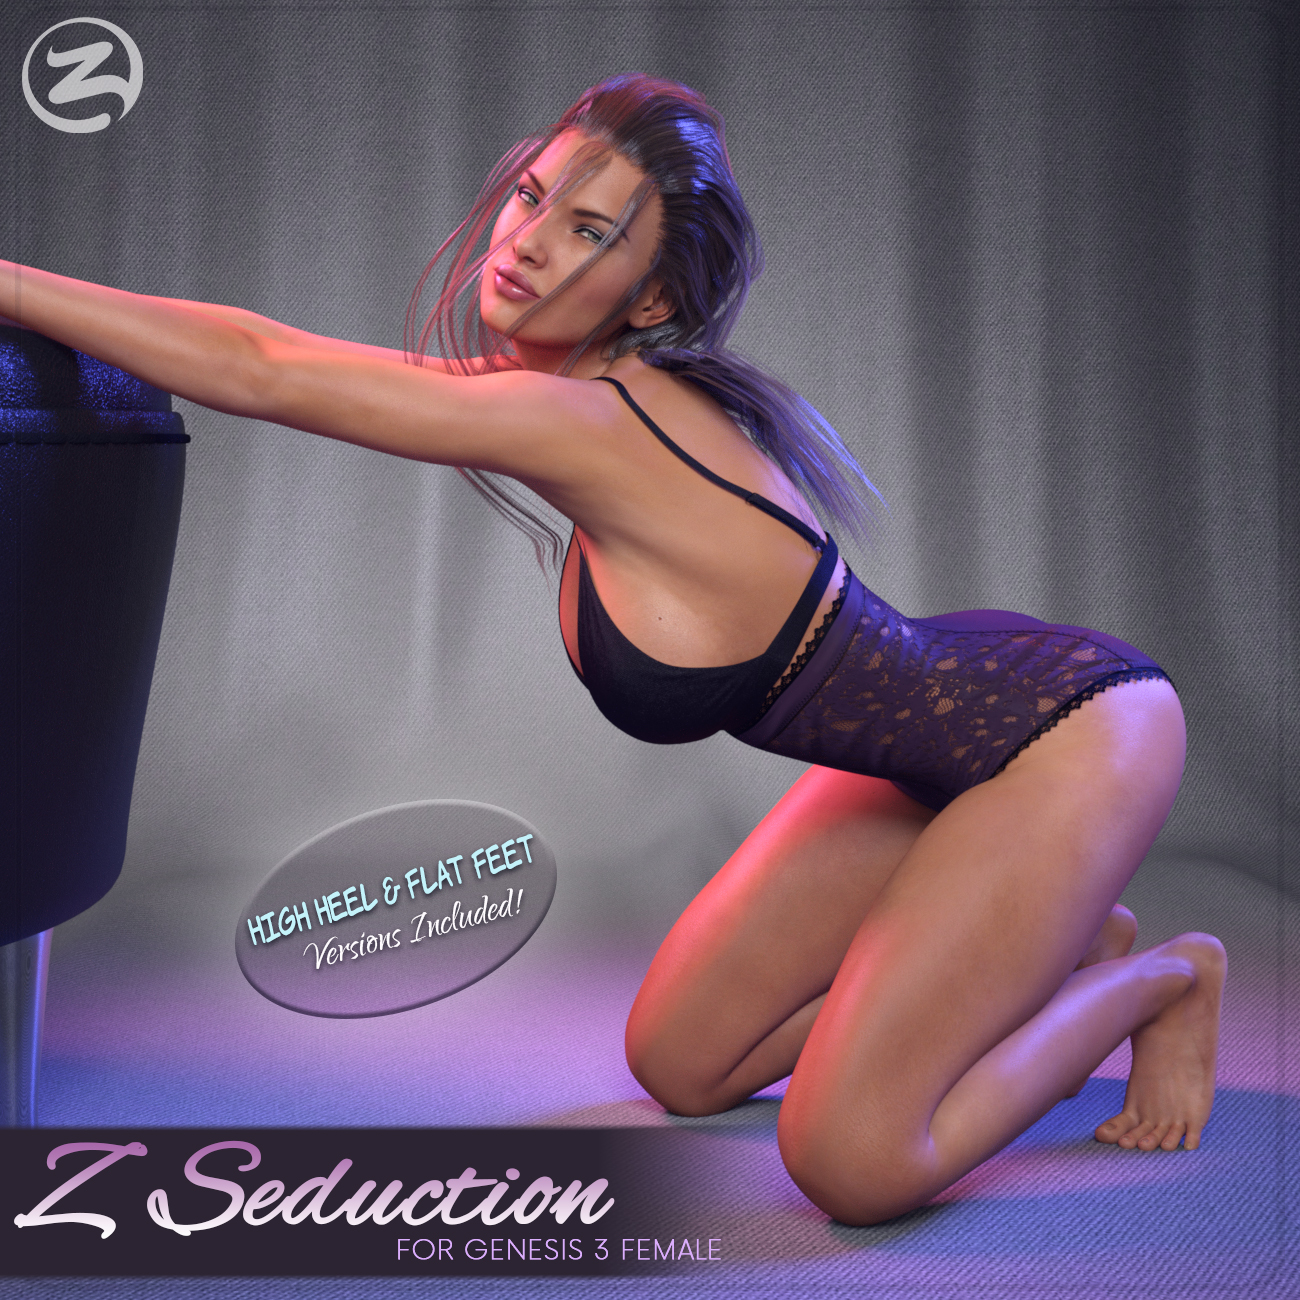 Z Seduction - Poses for the Genesis 3 Females